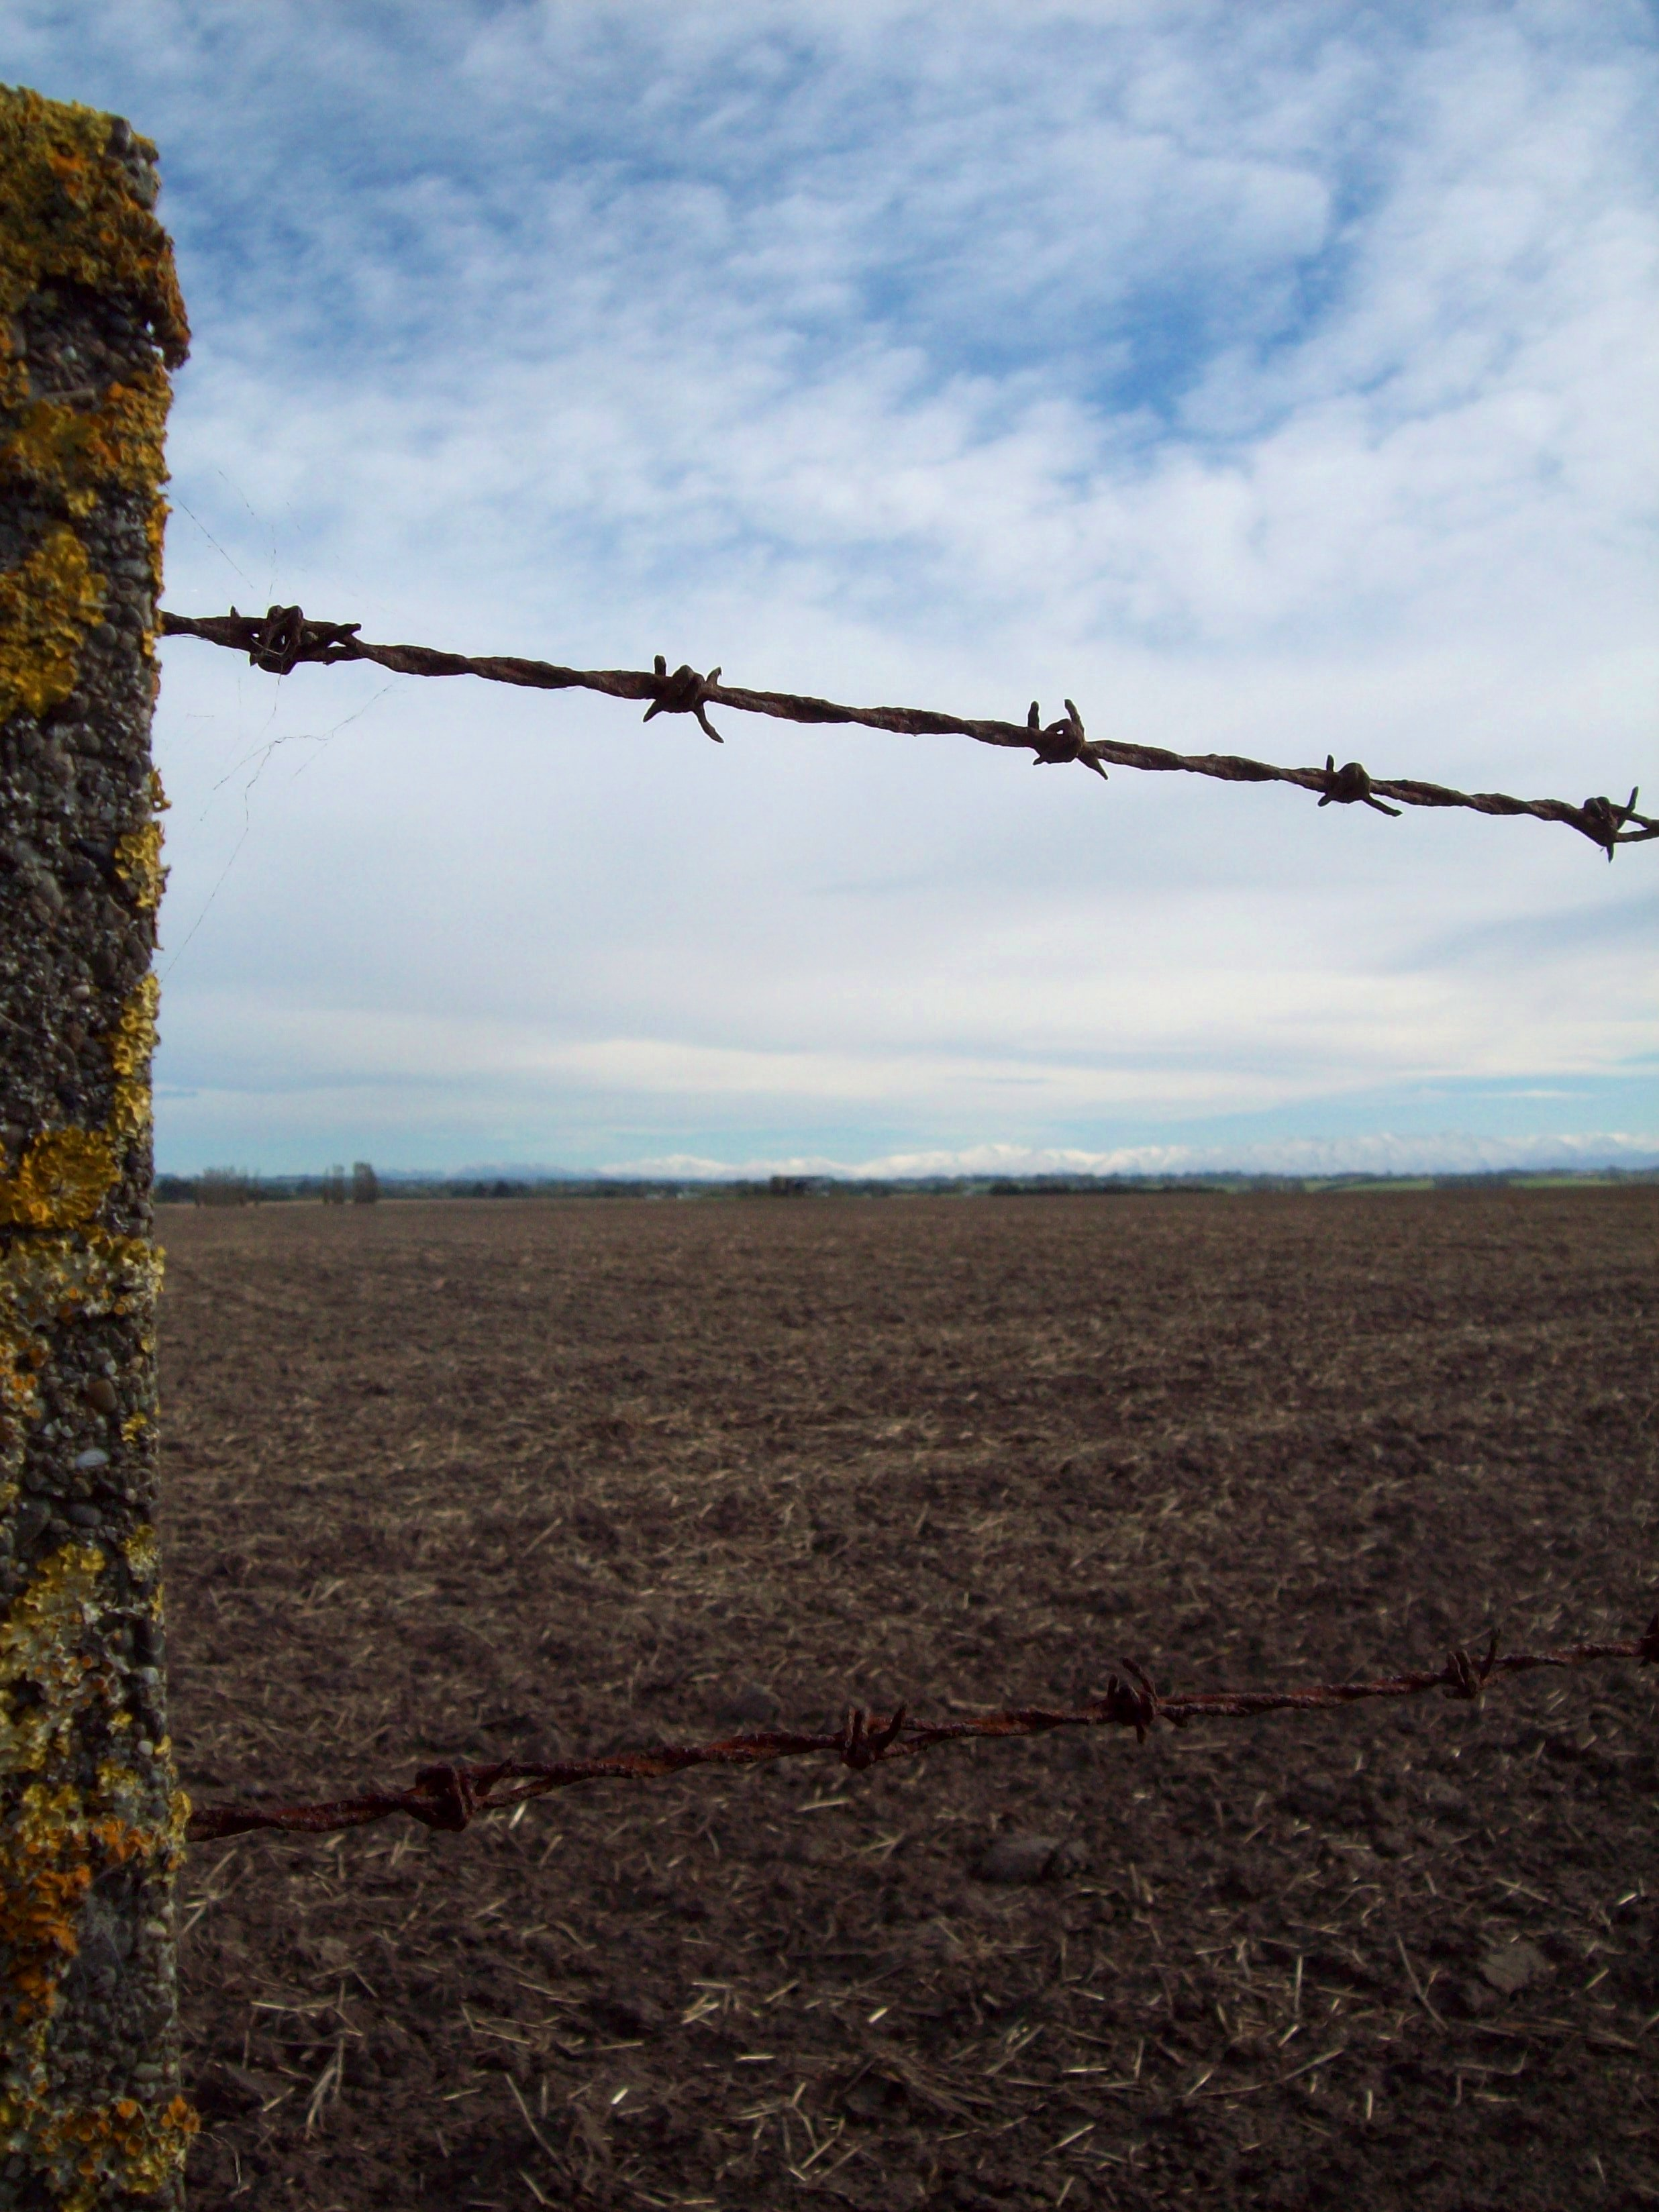 Free photo: Barb wire fence, South Canterbury - Pasture, Nz, Post ...